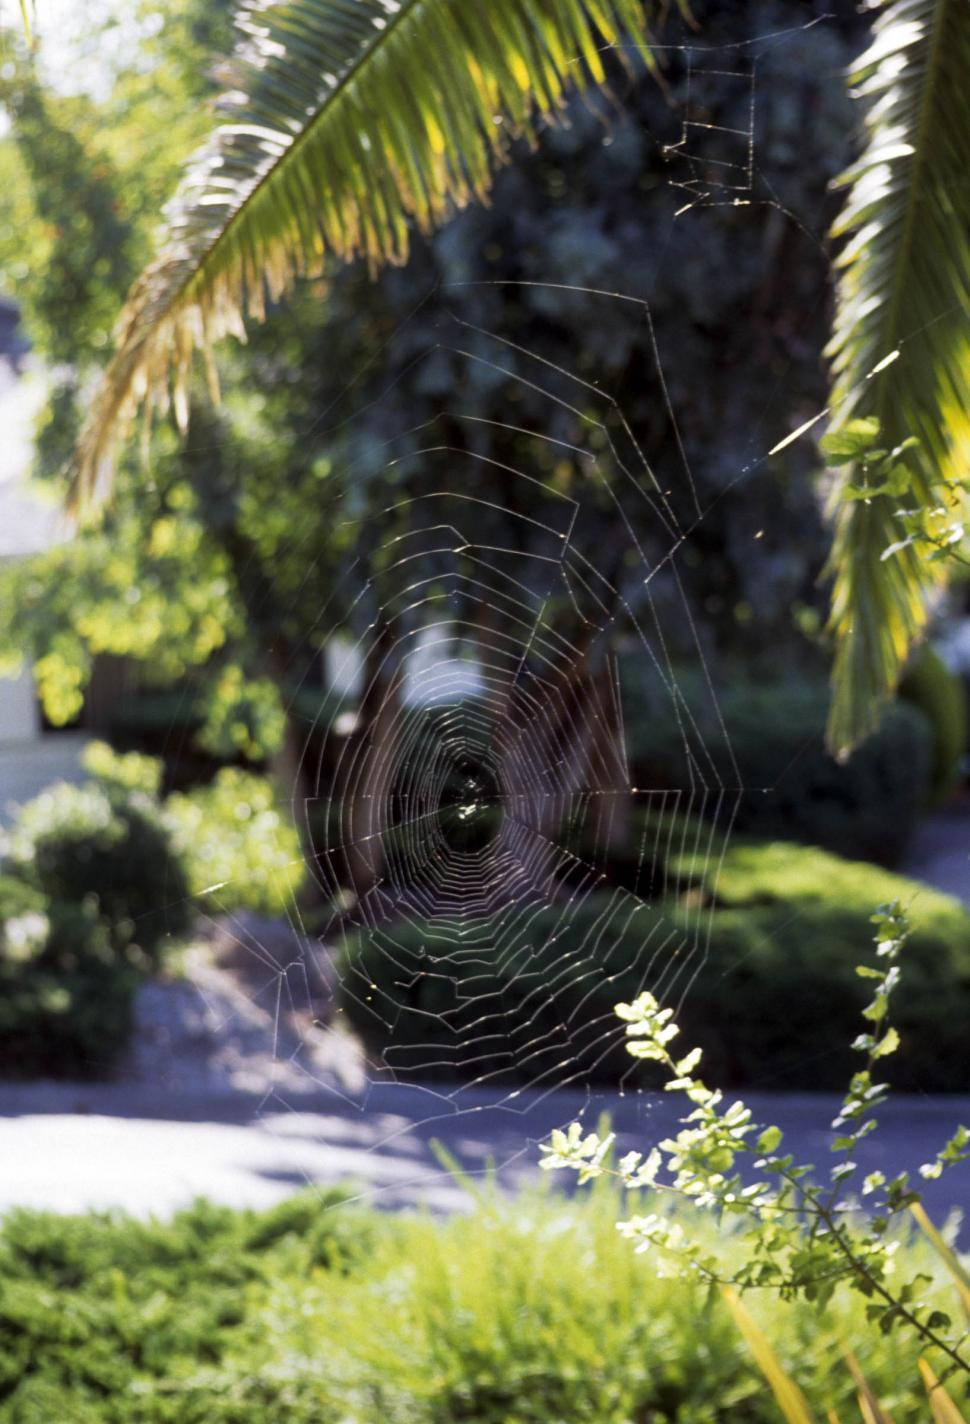 Download Free Stock HD Photo of spider orb web Online